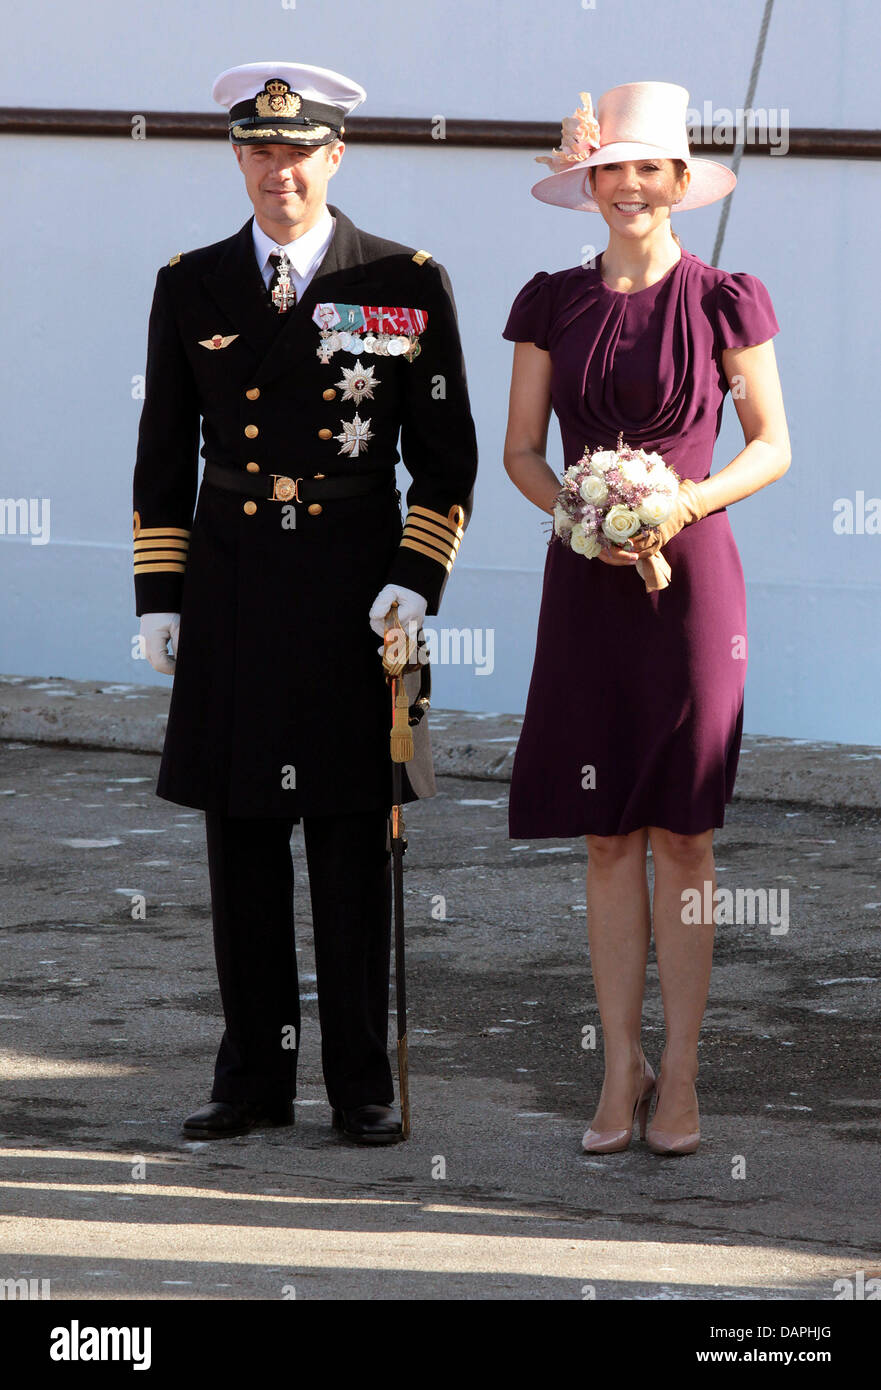 Danish Crown Prince Frederik and Crown Princess Mary attend an official event in Skagen, Denmark, during their summer - Stock Image